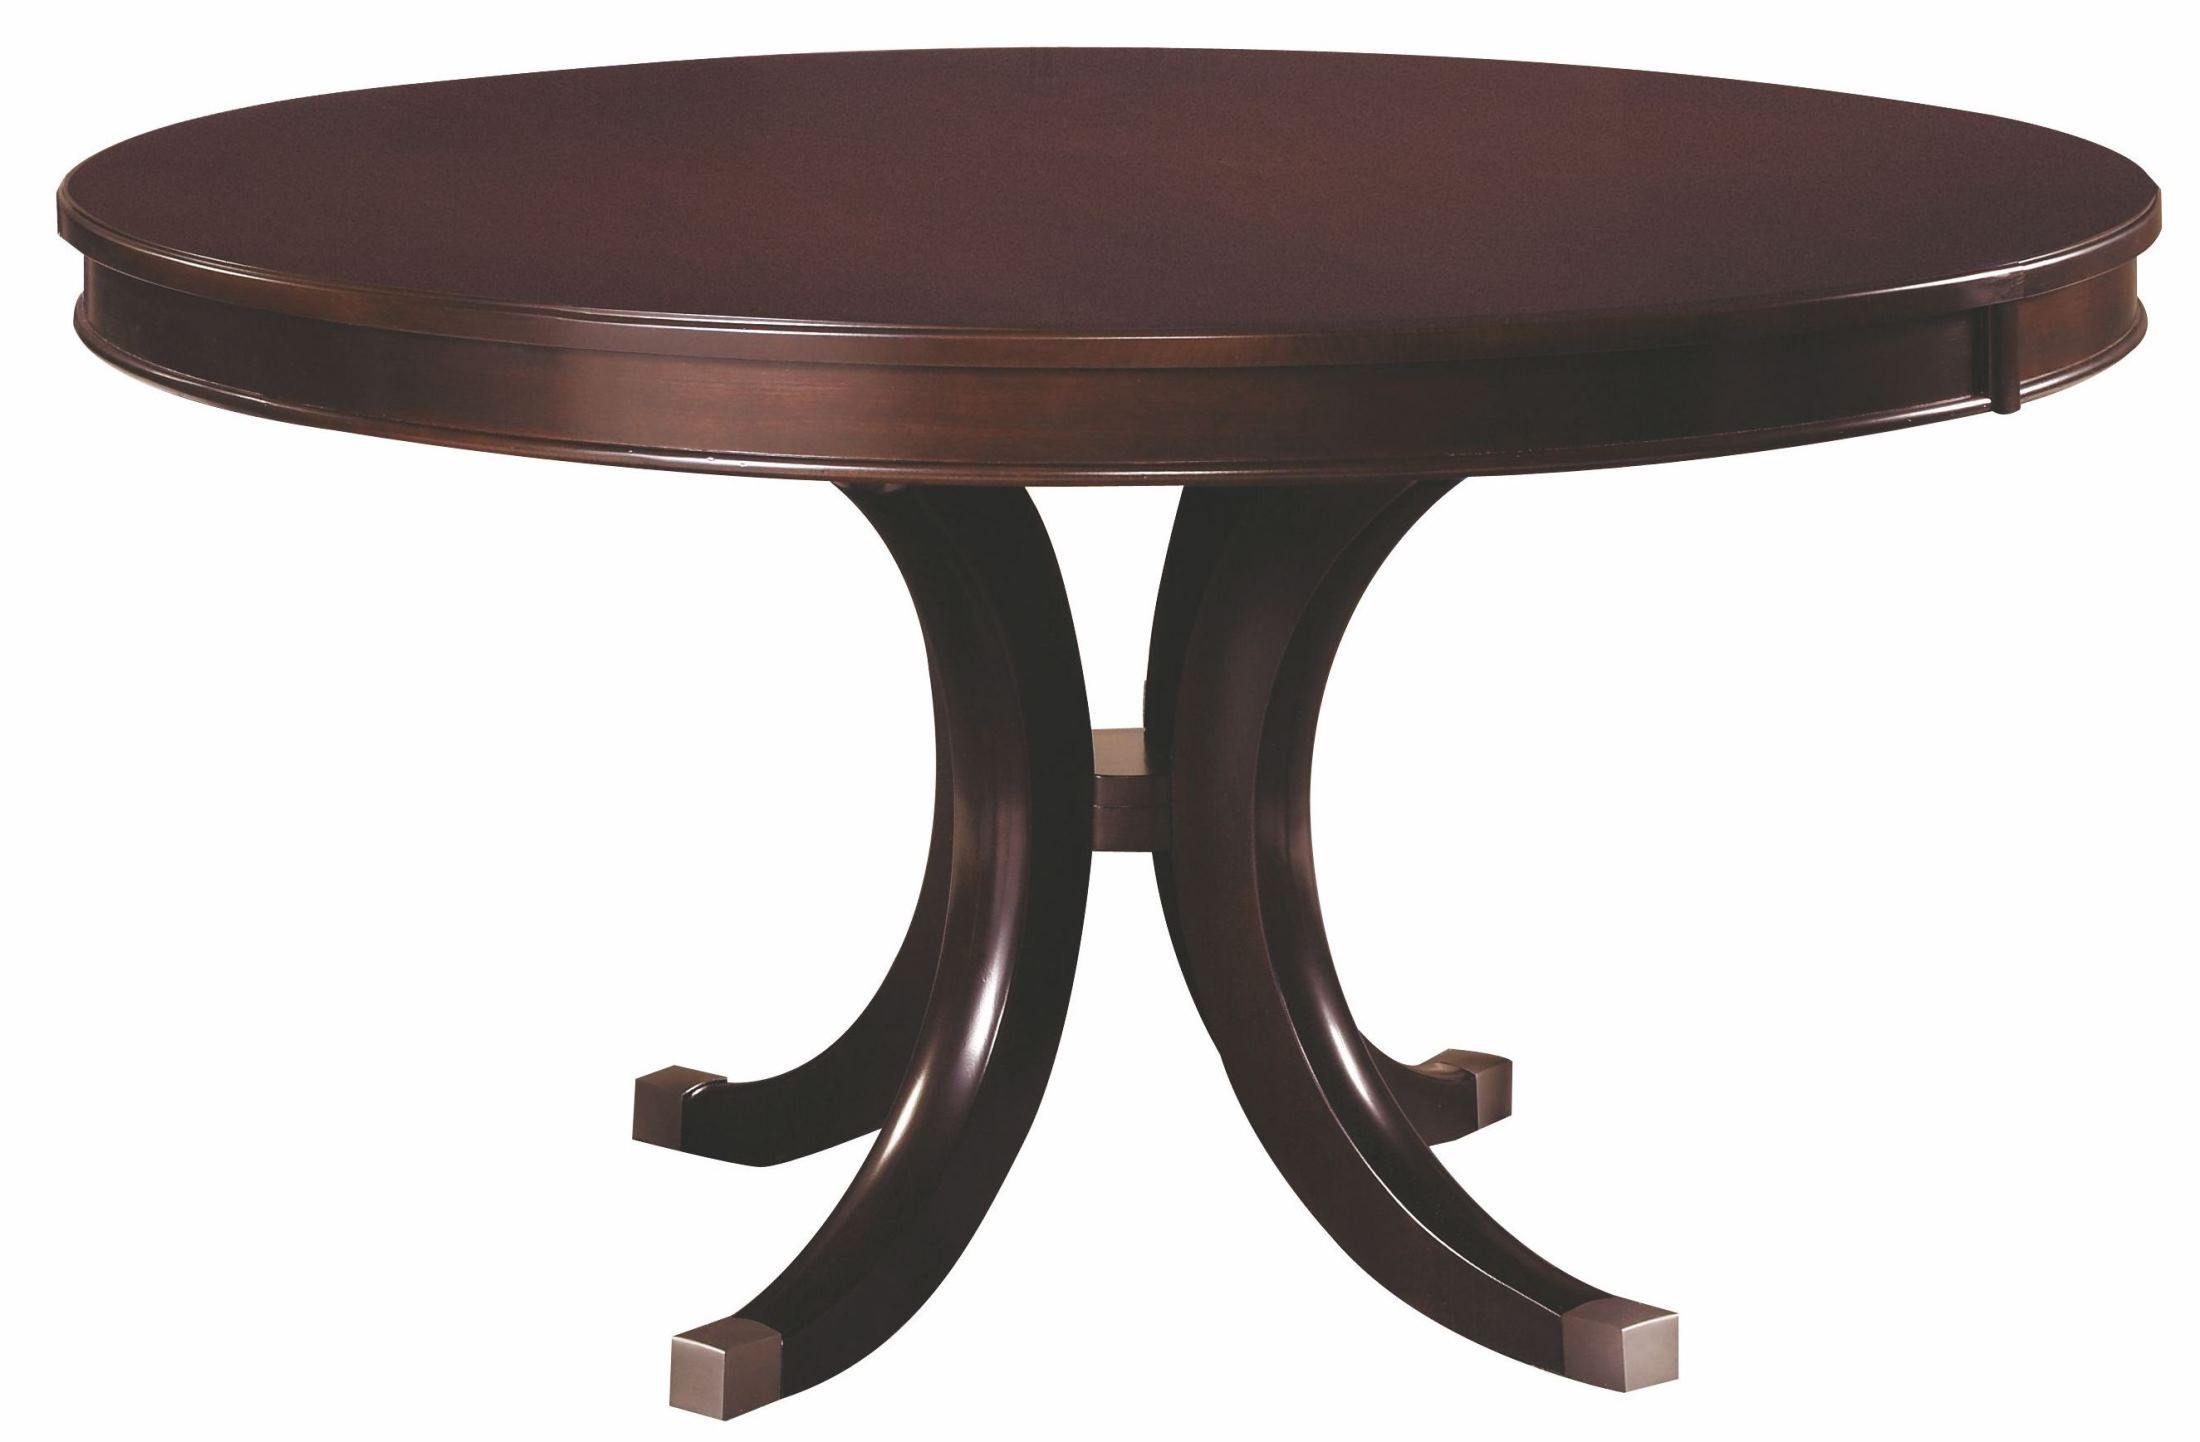 Alston round extendable dining table 92 052 kincaid for Round extendable dining table